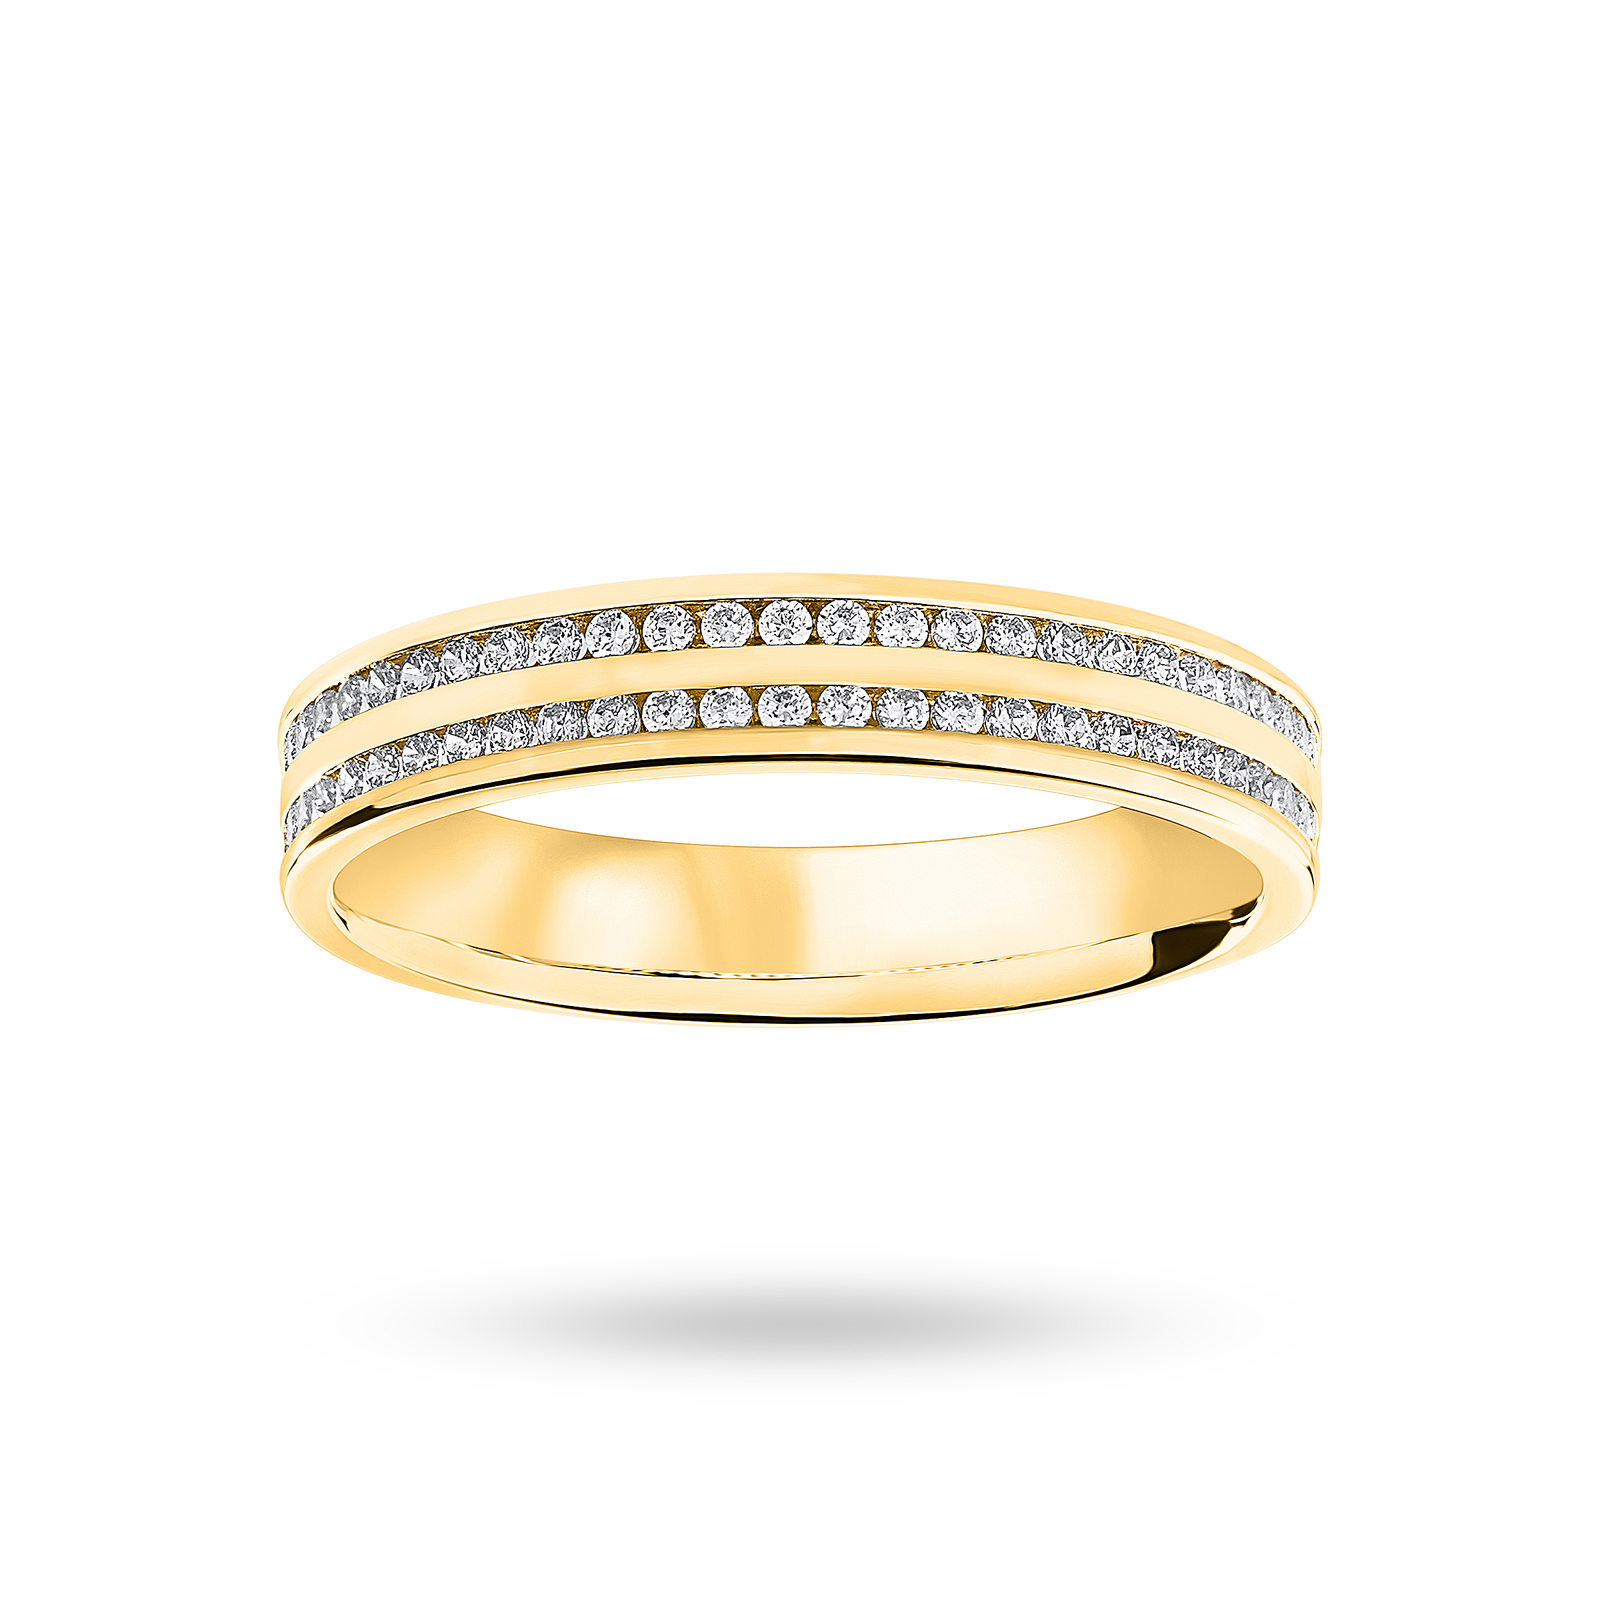 18 Carat Yellow Gold 0.28 Carat Brilliant Cut 2 Row Channel Set Half Eternity Ring